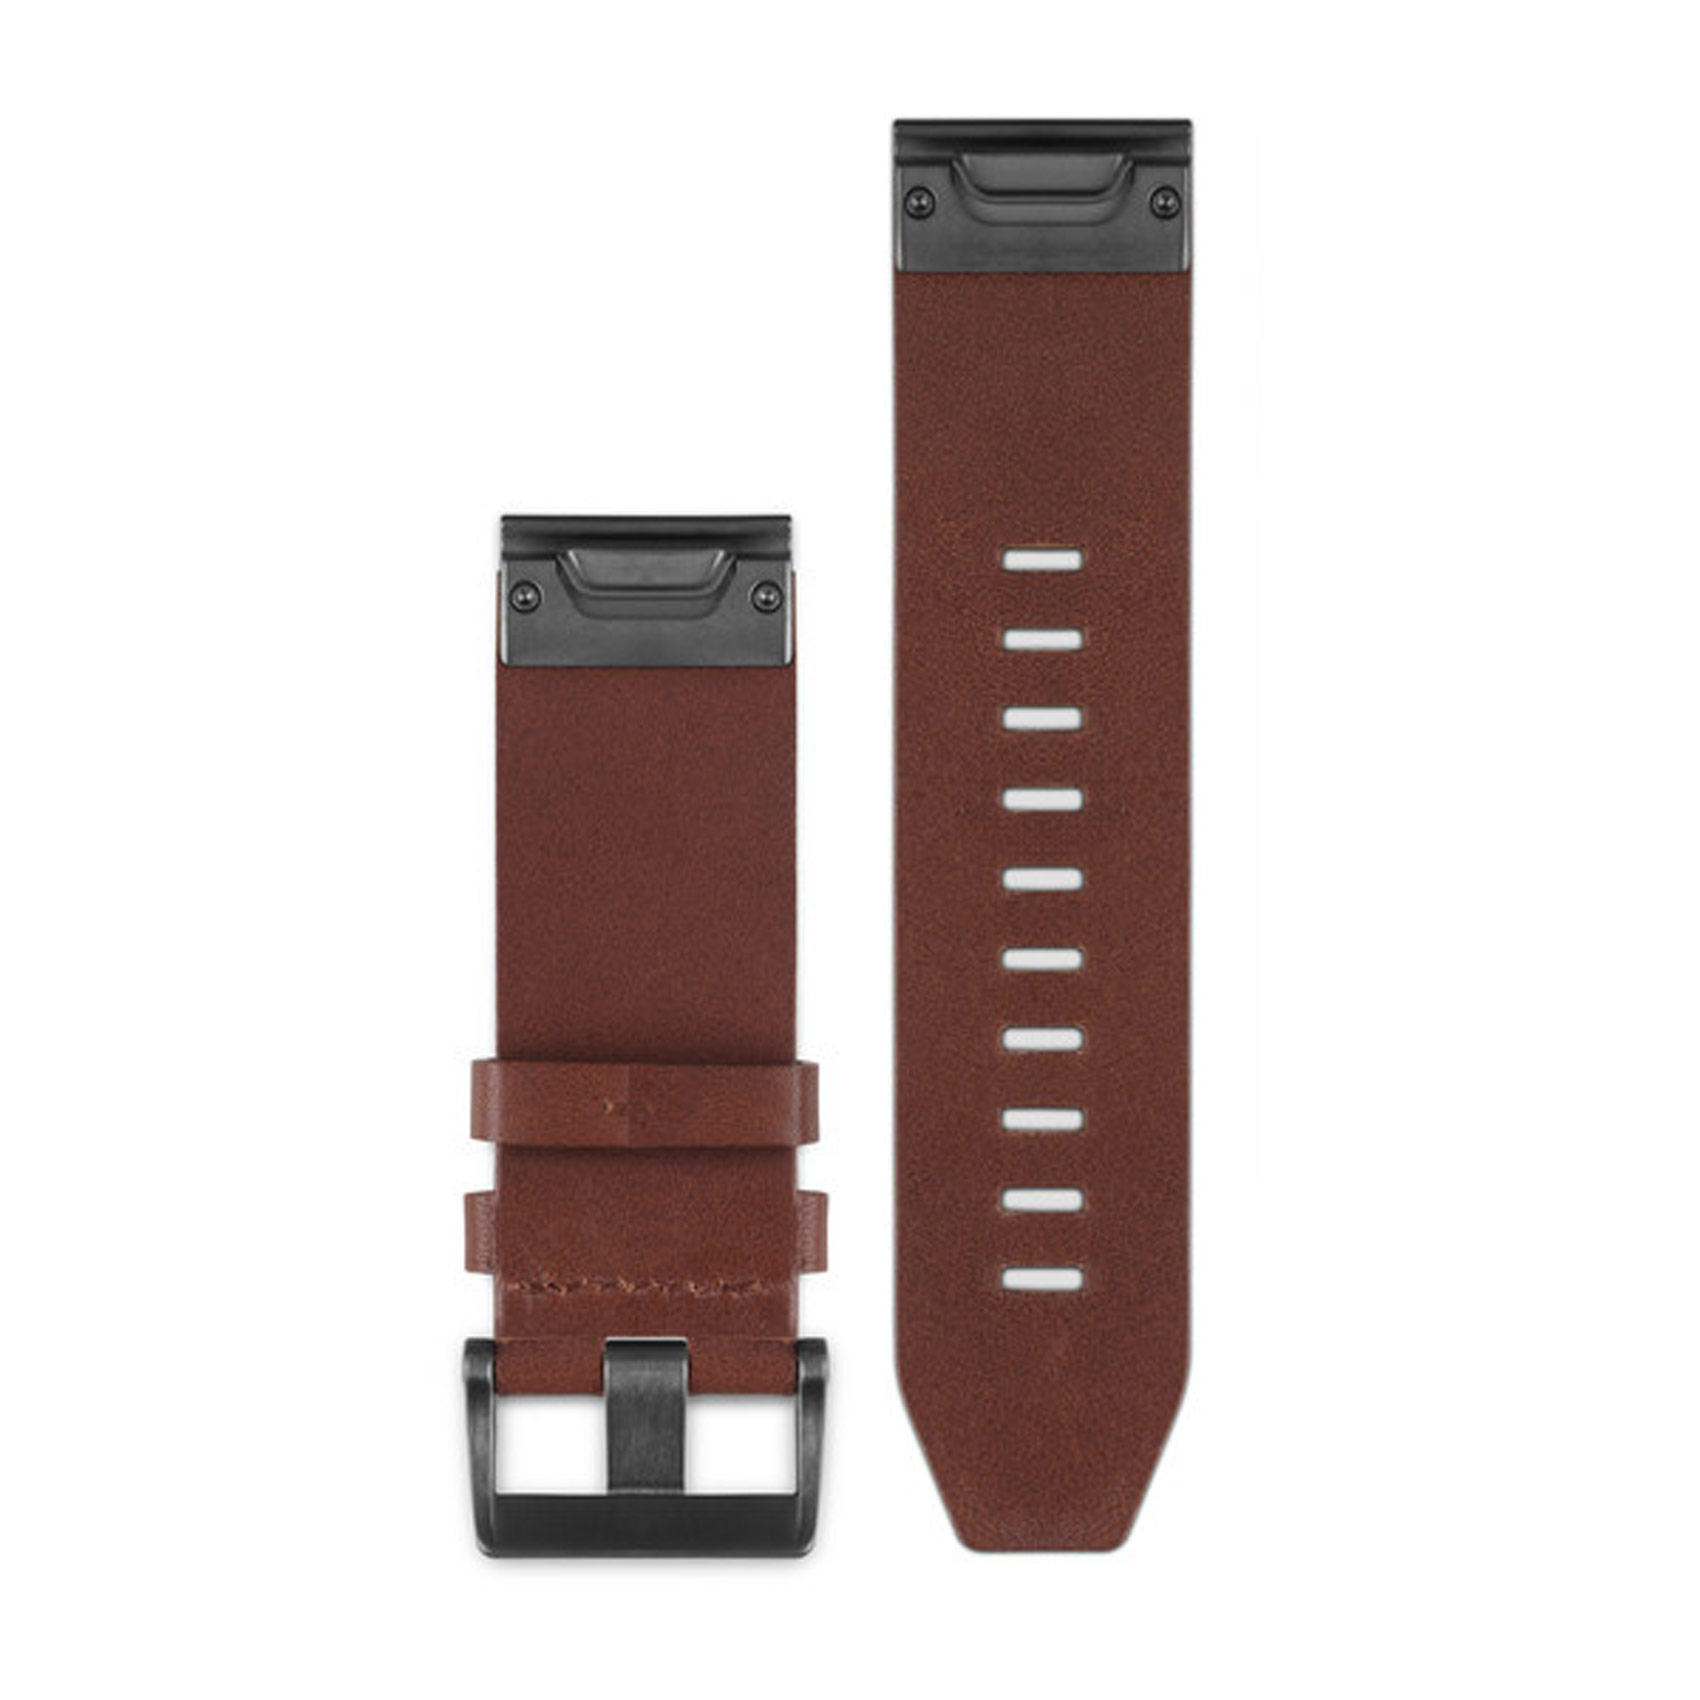 Garmin Quickfit 26mm Watch Strap Band | For D2 Bravo-Charlie-Delta PX_Descent Mk1